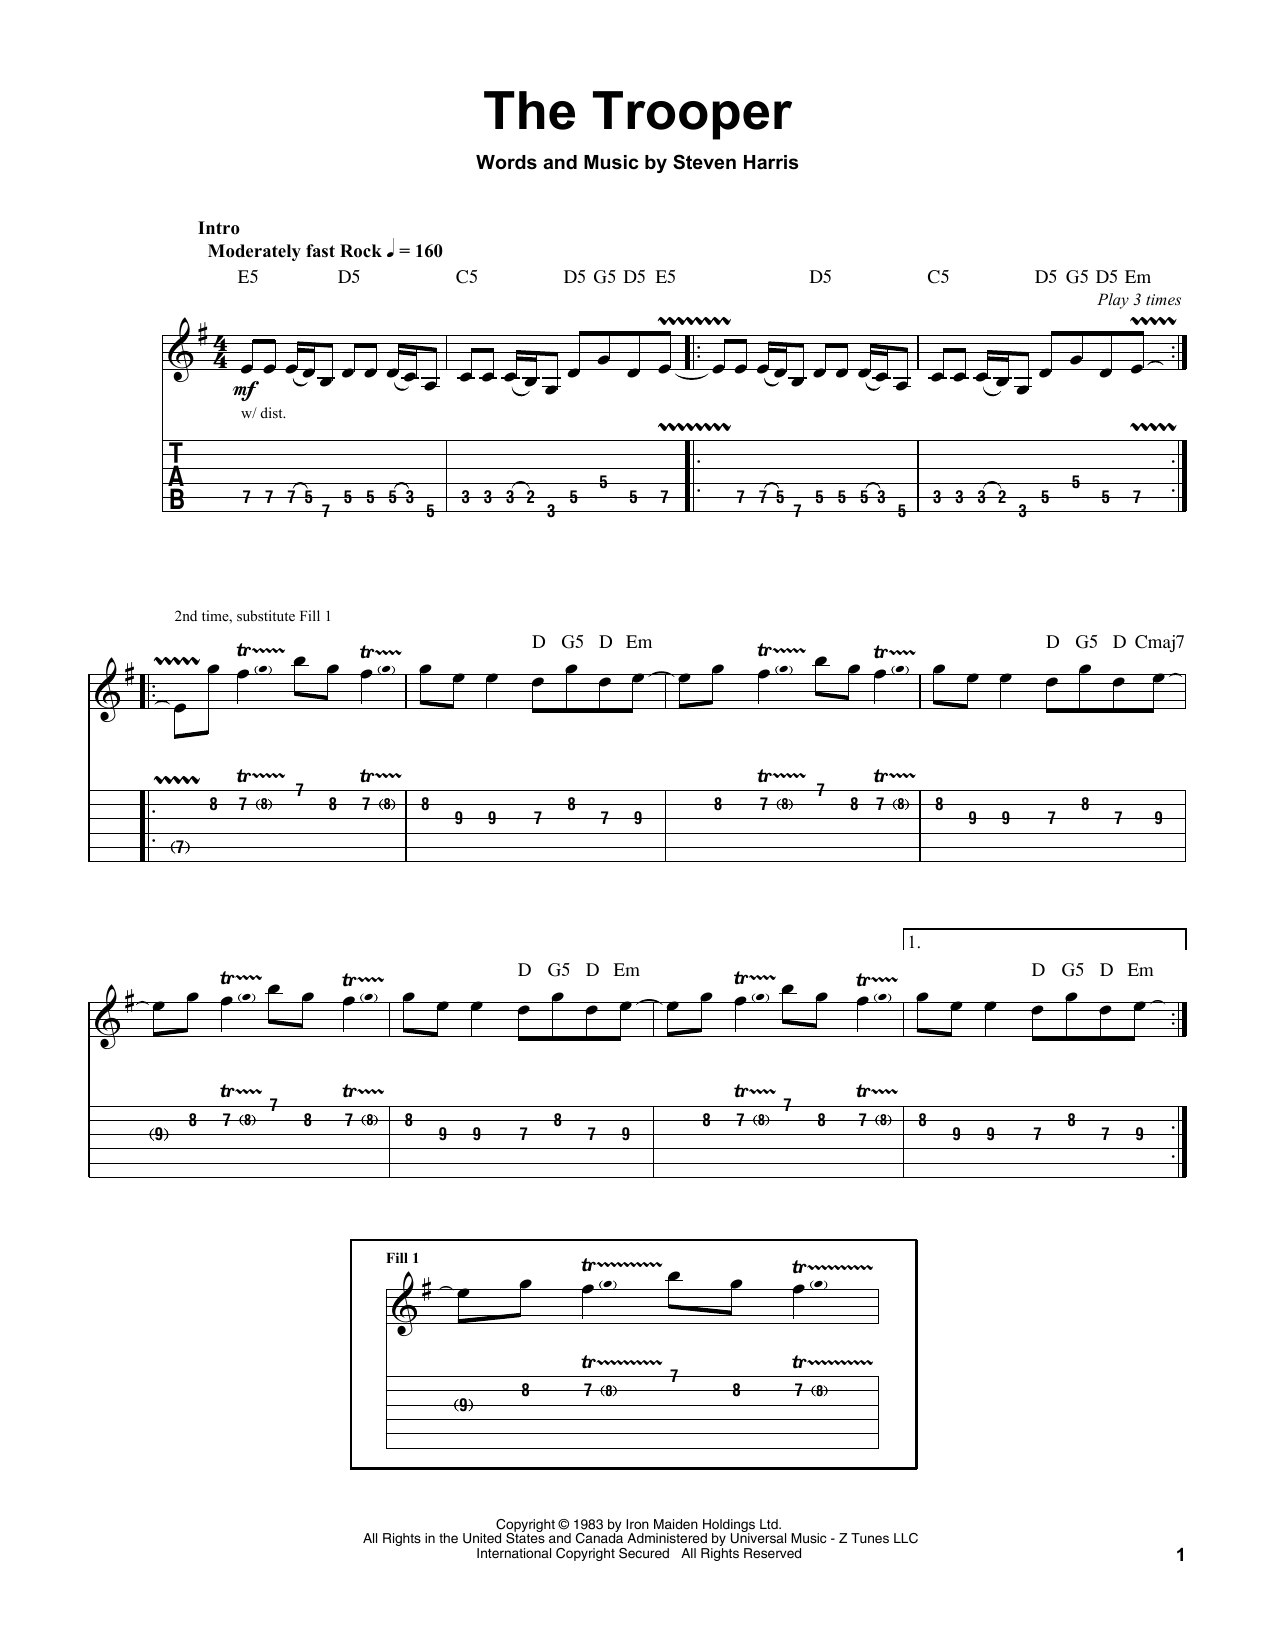 The Trooper Sheet Music